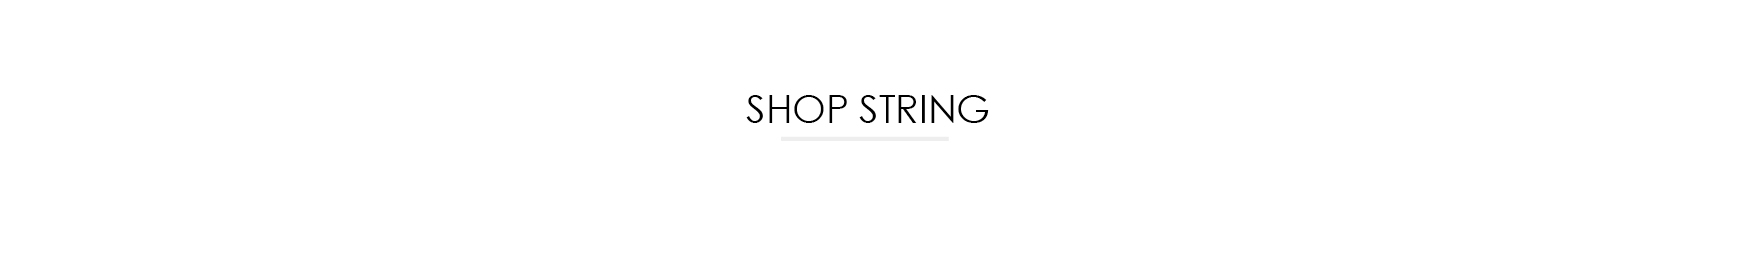 SHOP STRING MØBLER